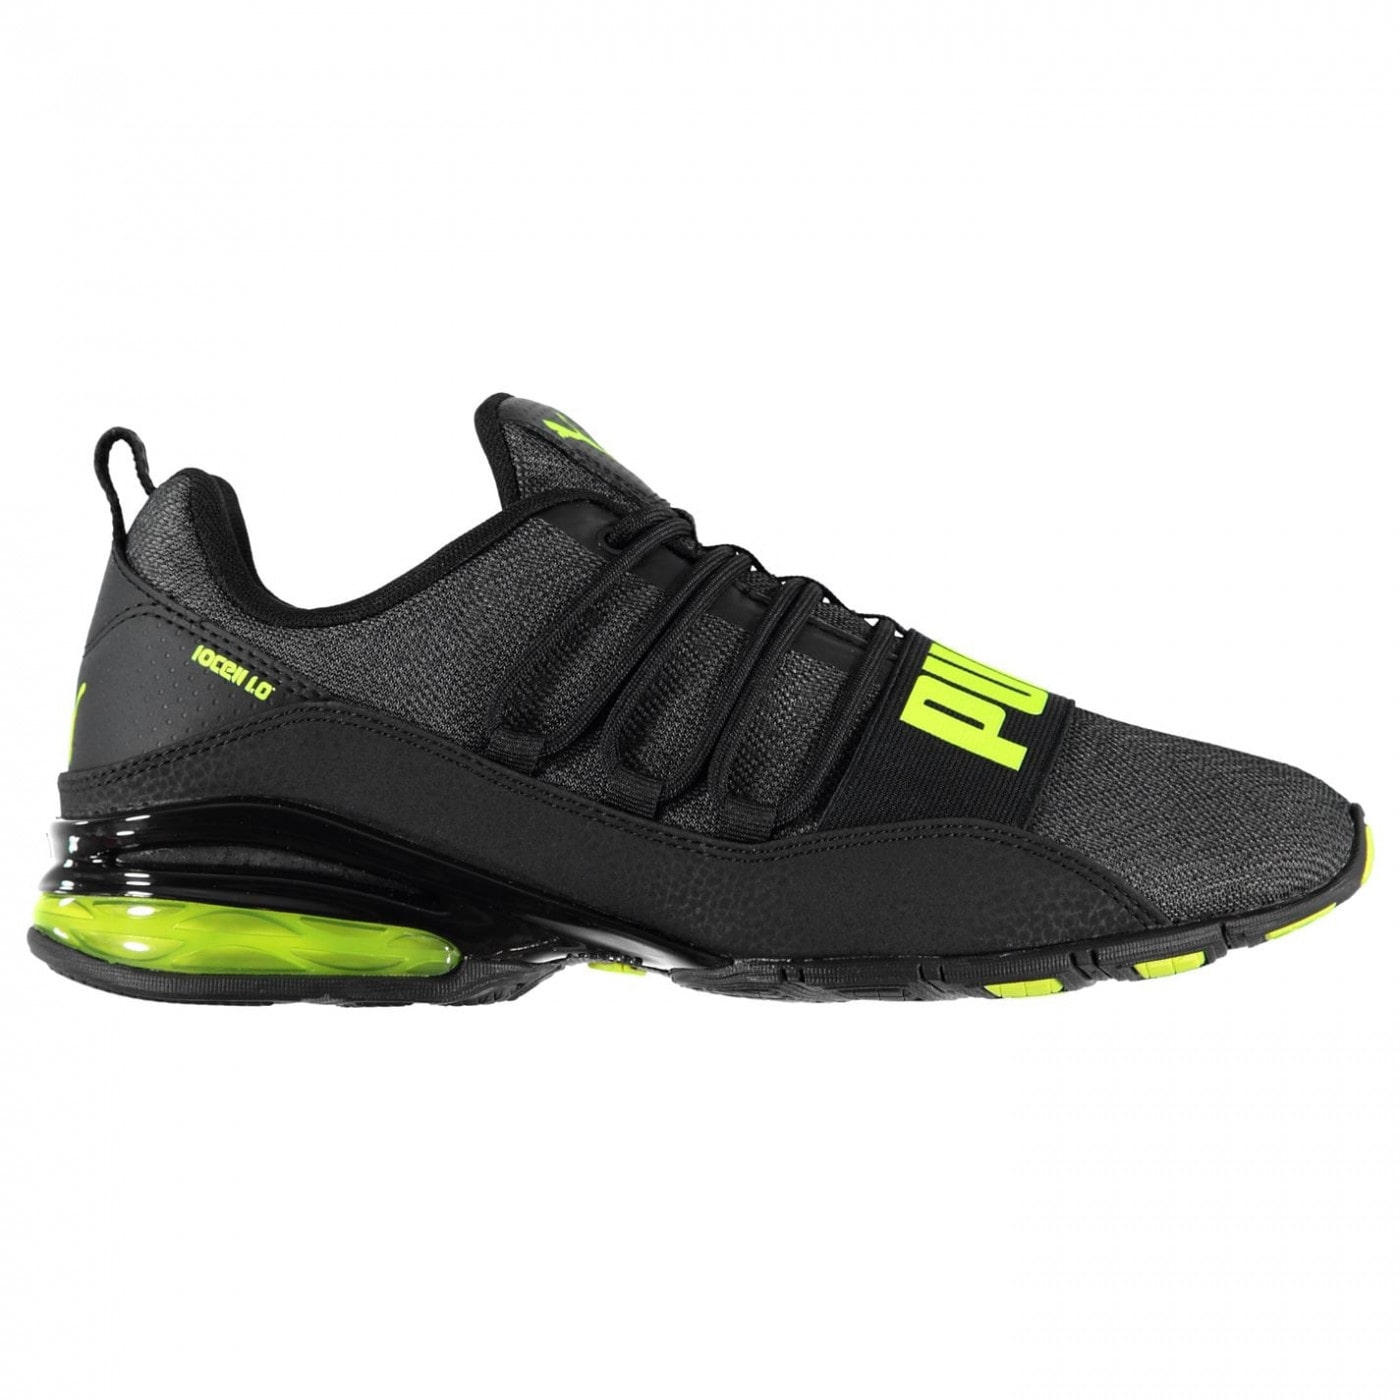 Men's trainers Puma Cell Regulate